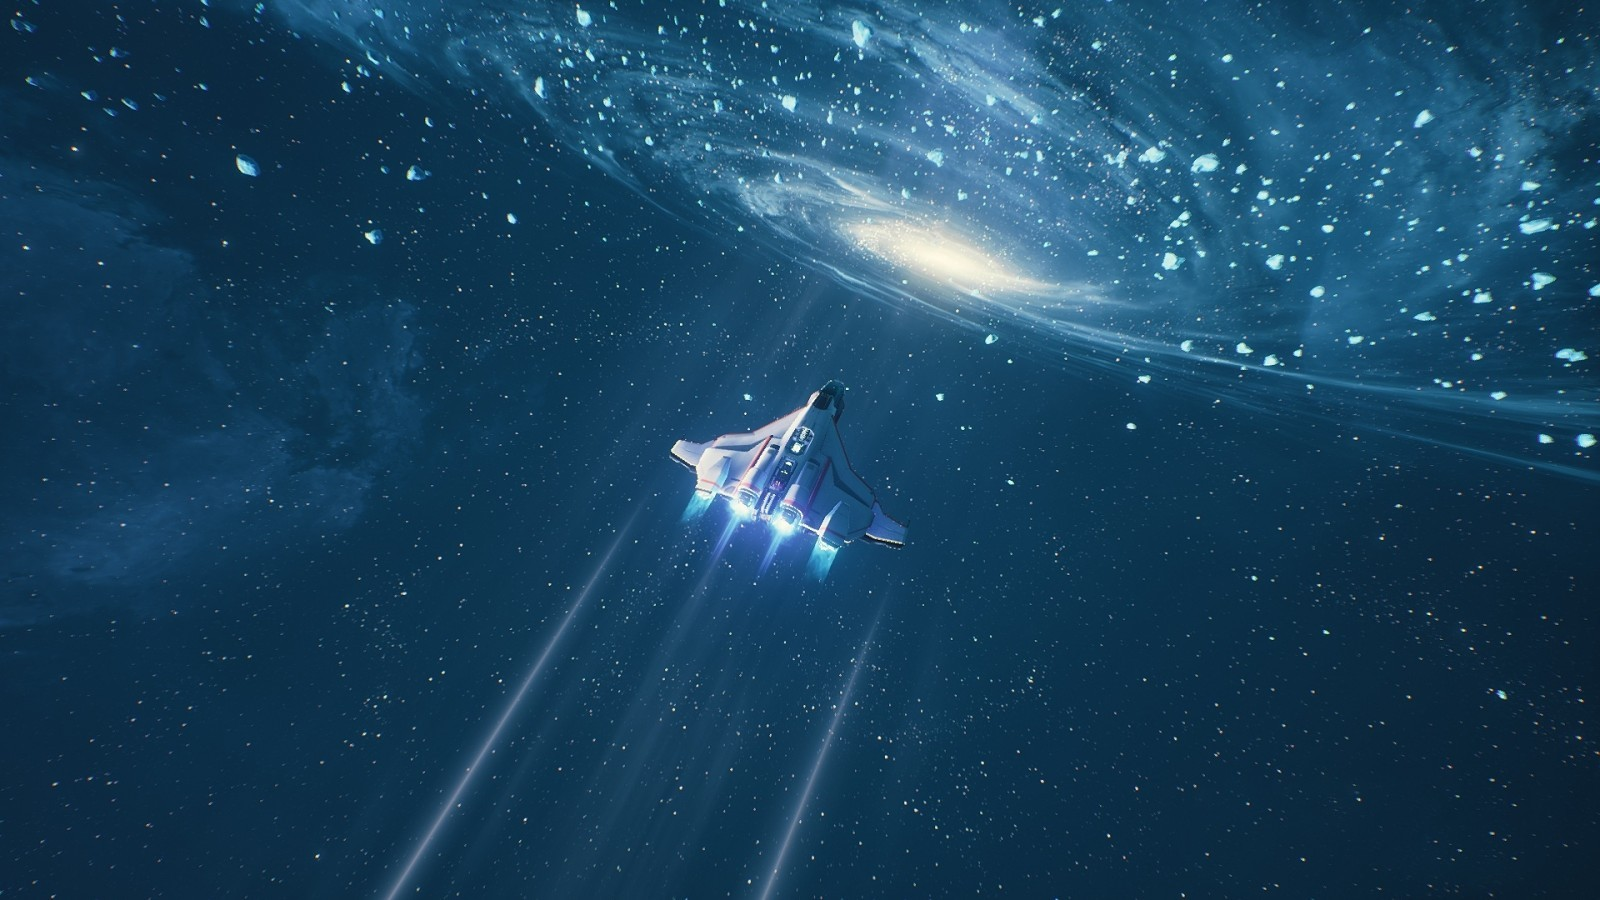 Spaceship Wallpapers